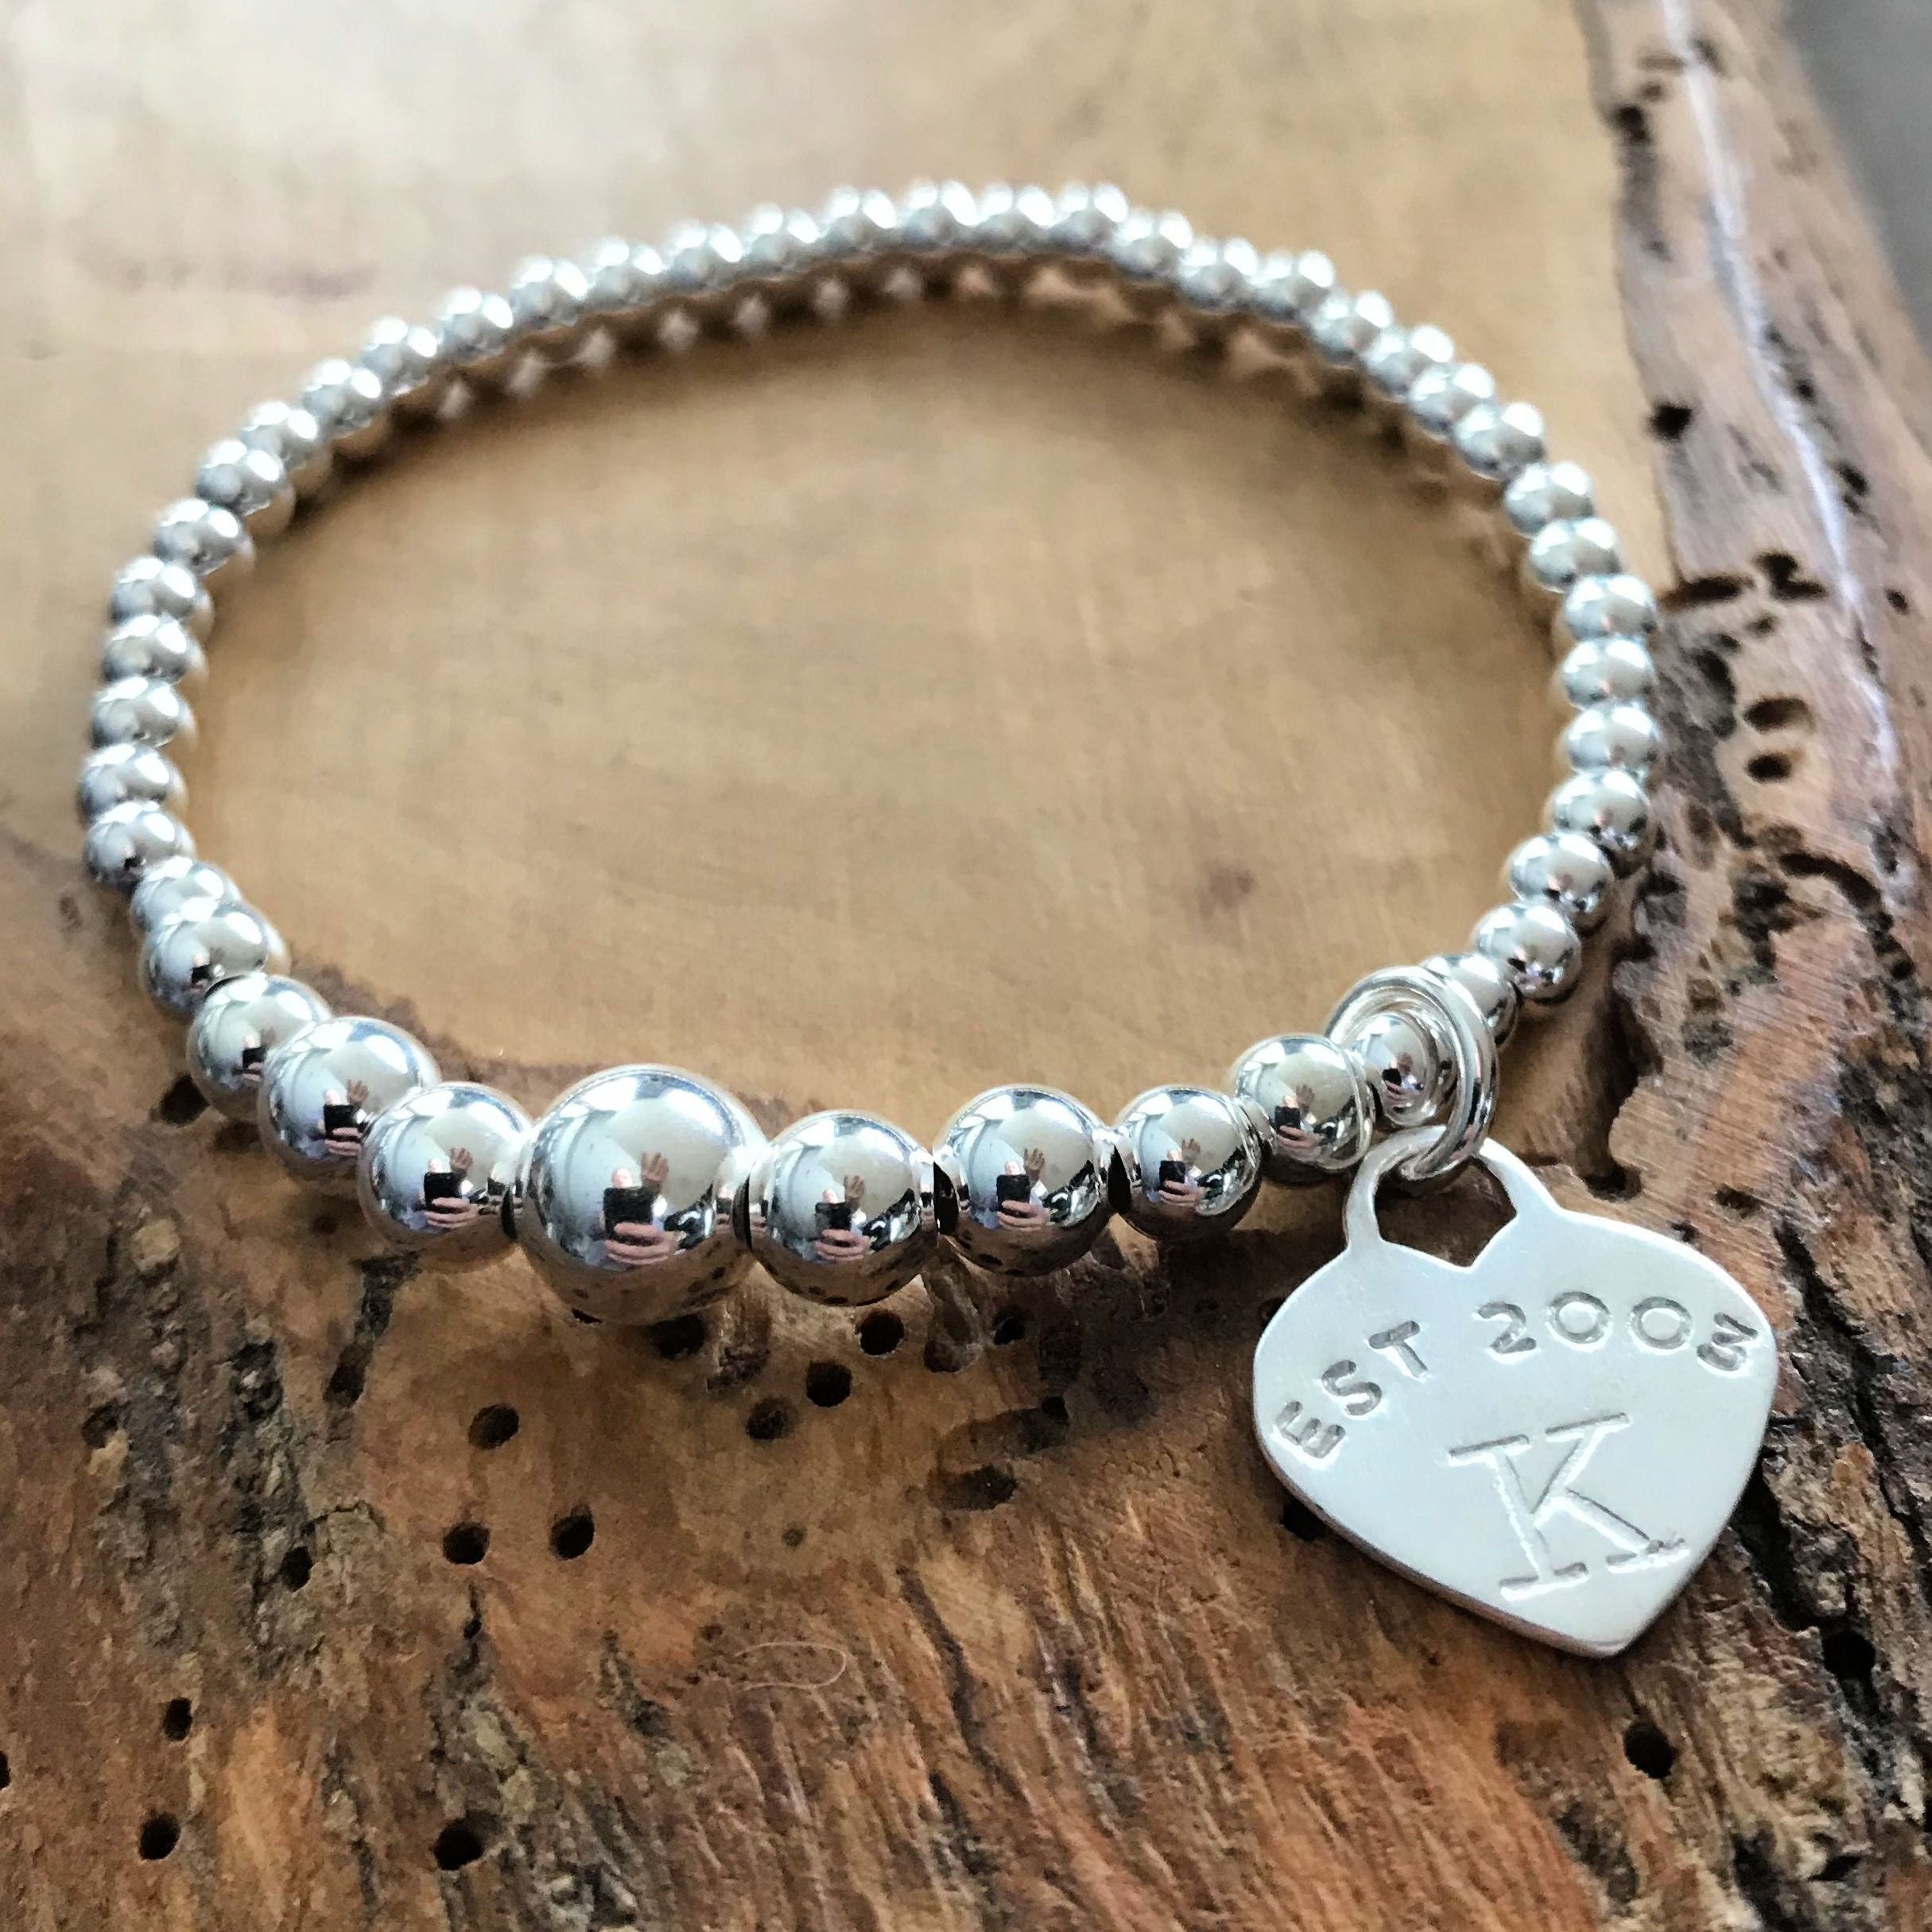 Real Sterling Silver Beaded Bracelet Engraved Heart Charm with engraving